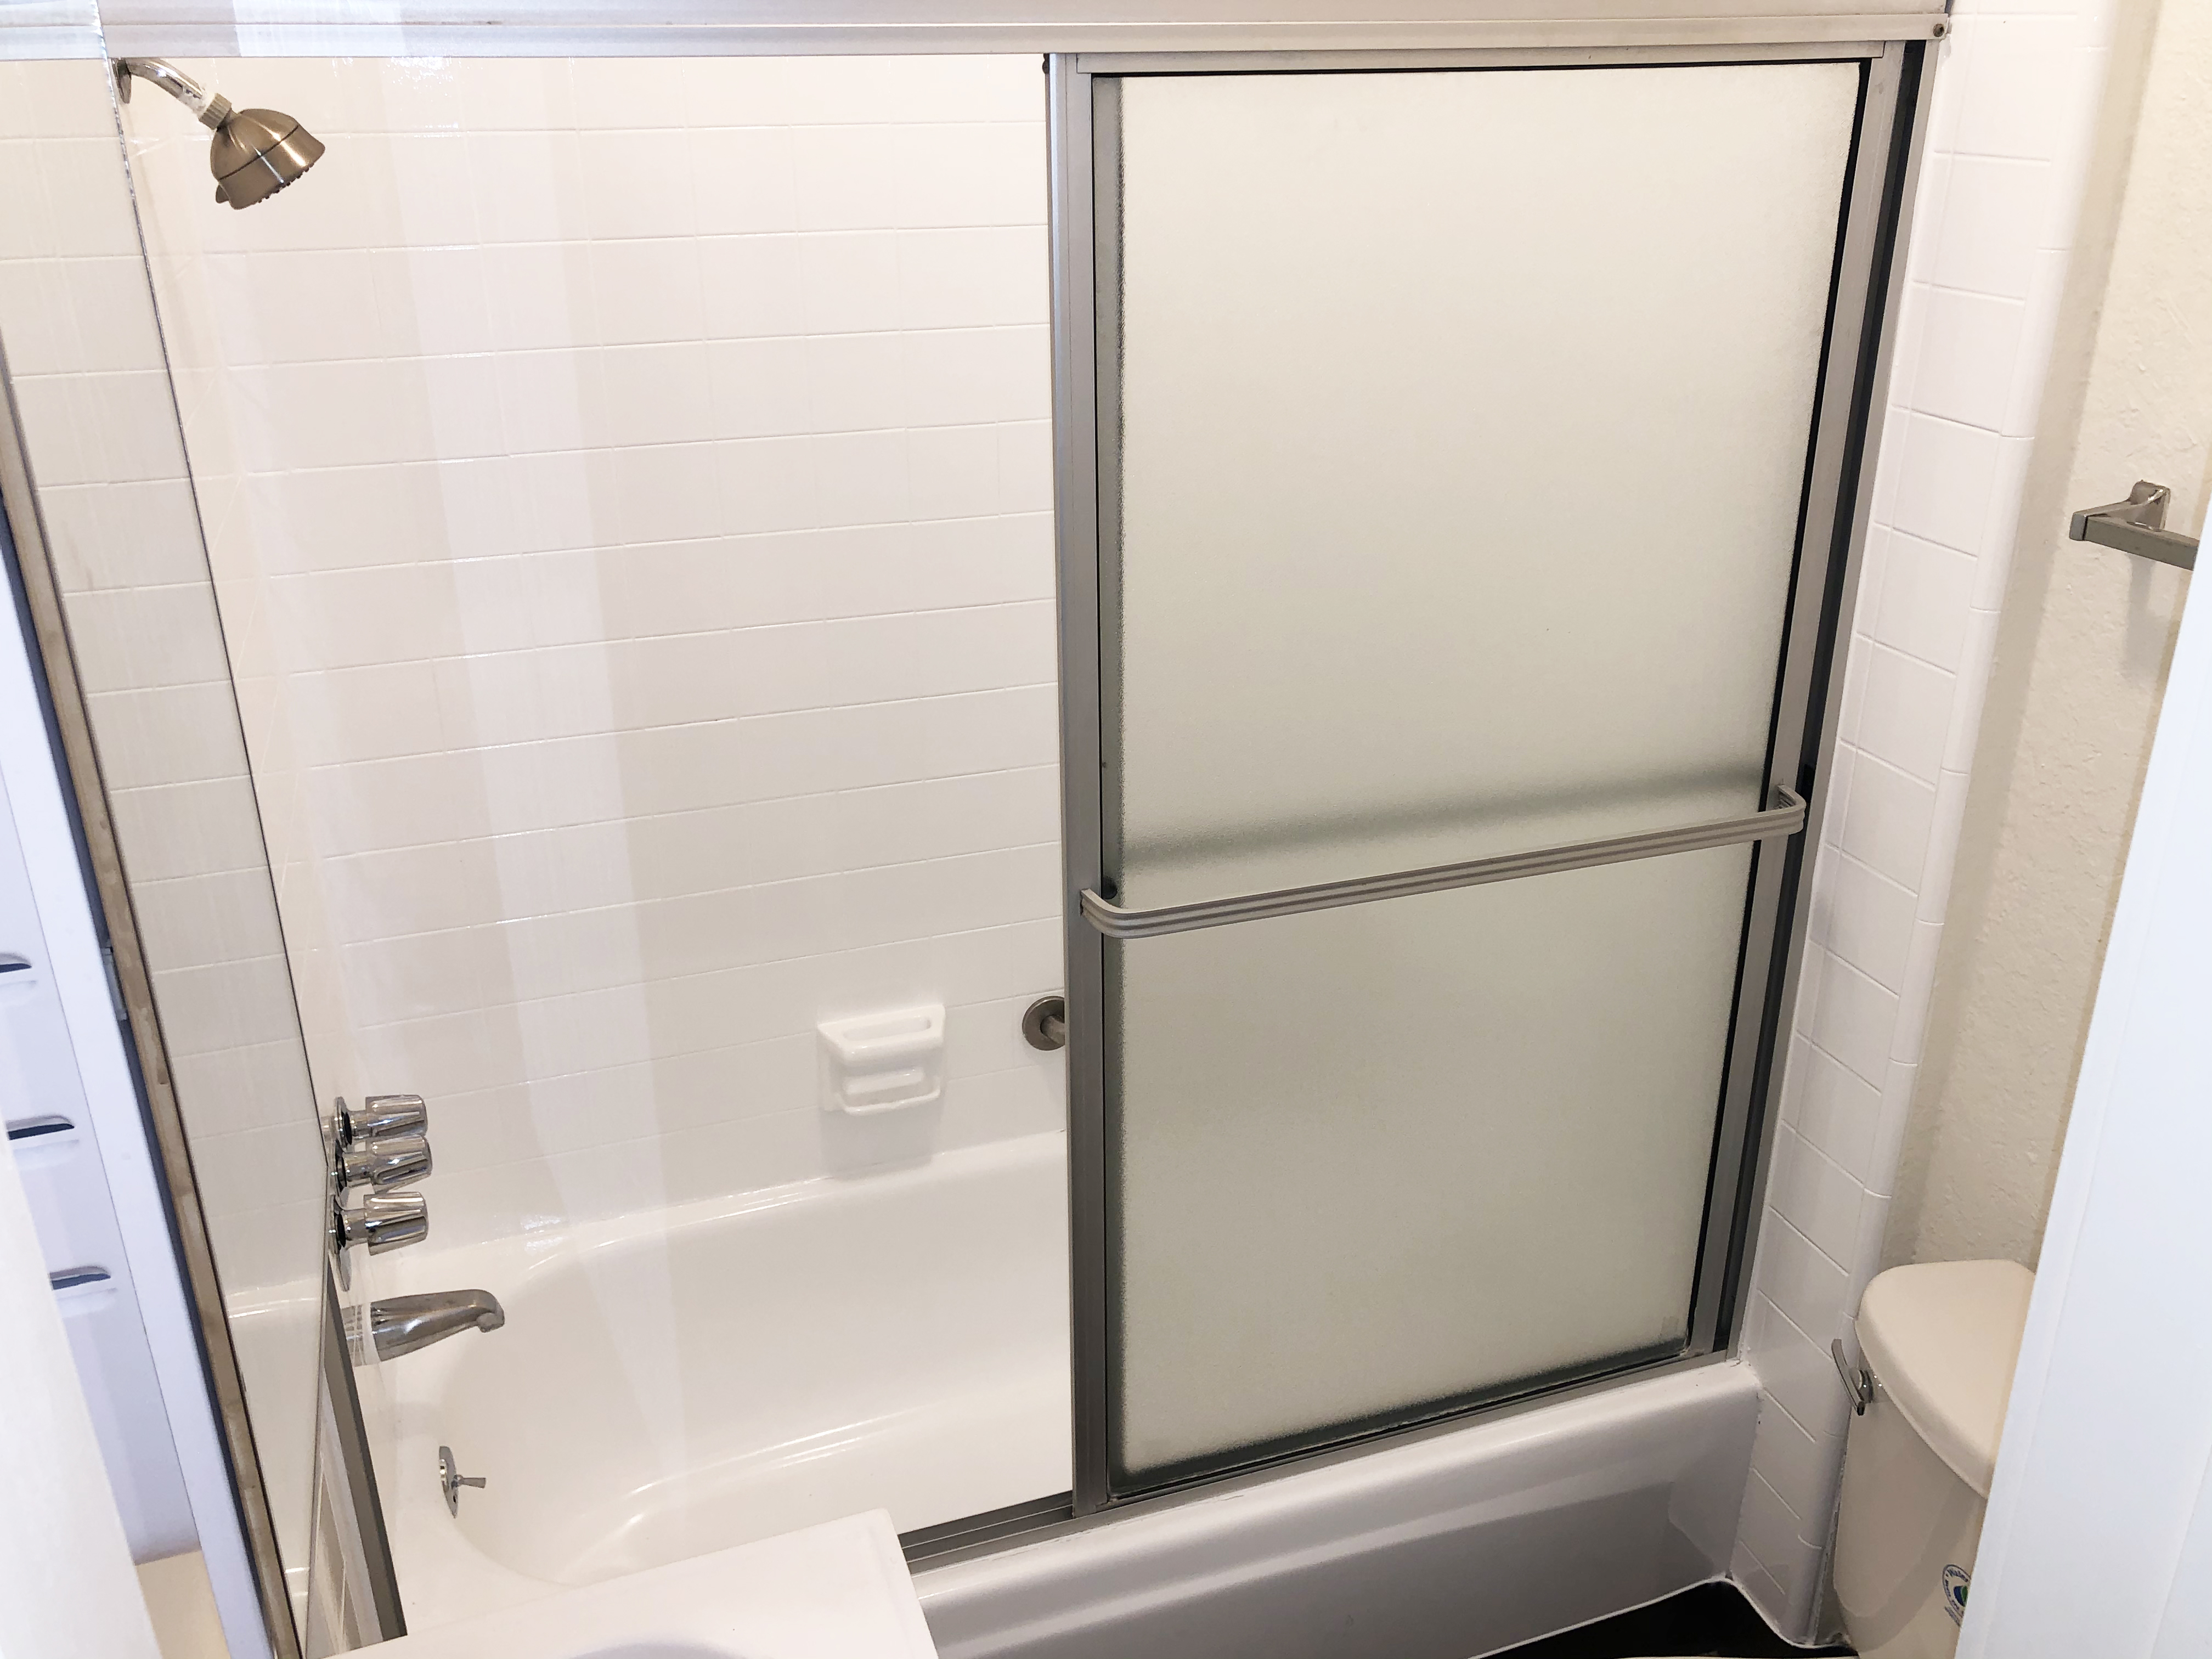 Close up view of the restroom showing the bathtub with showing and sliding door